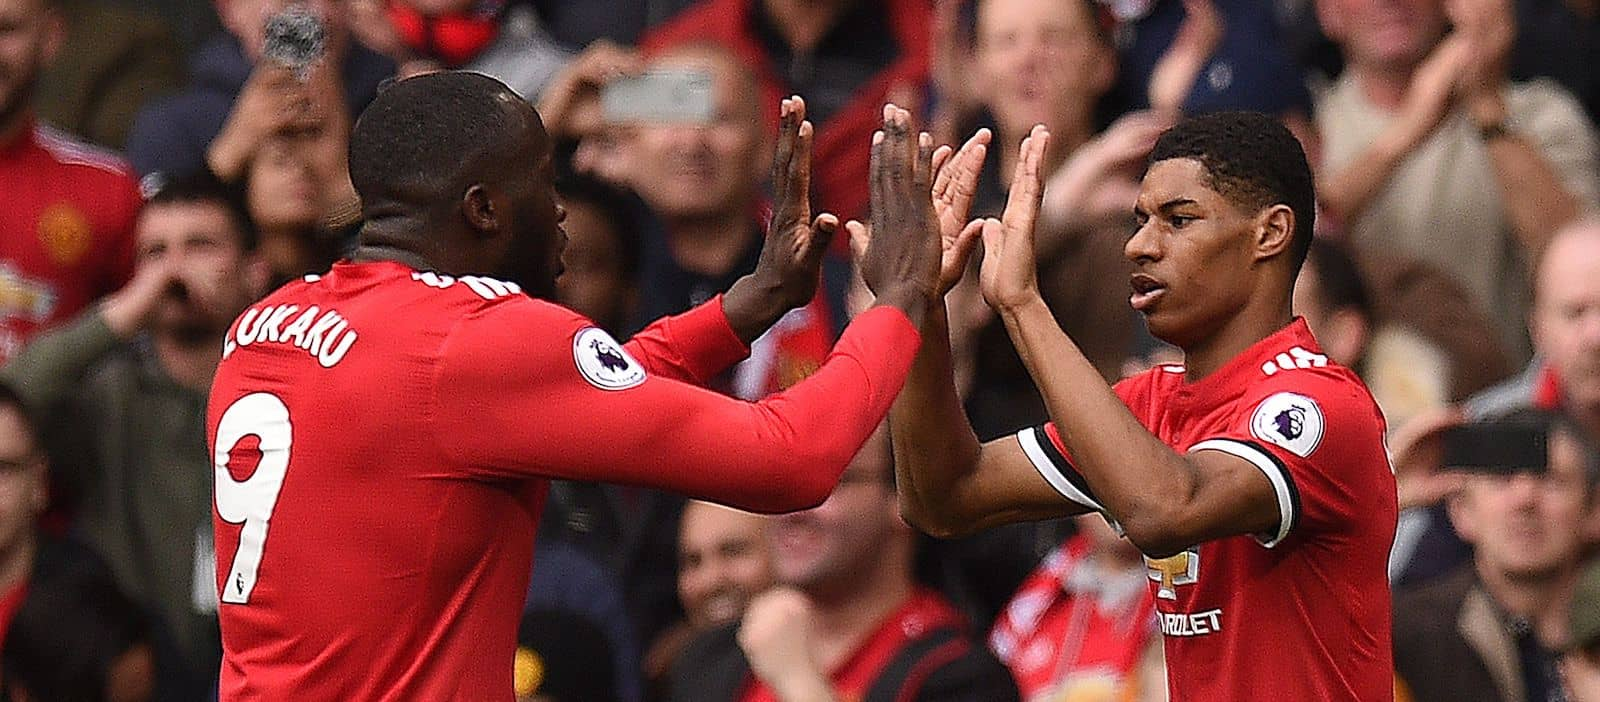 Marcus Rashford must follow Lukaku example and leave Manchester United, claims Jamie Carragher